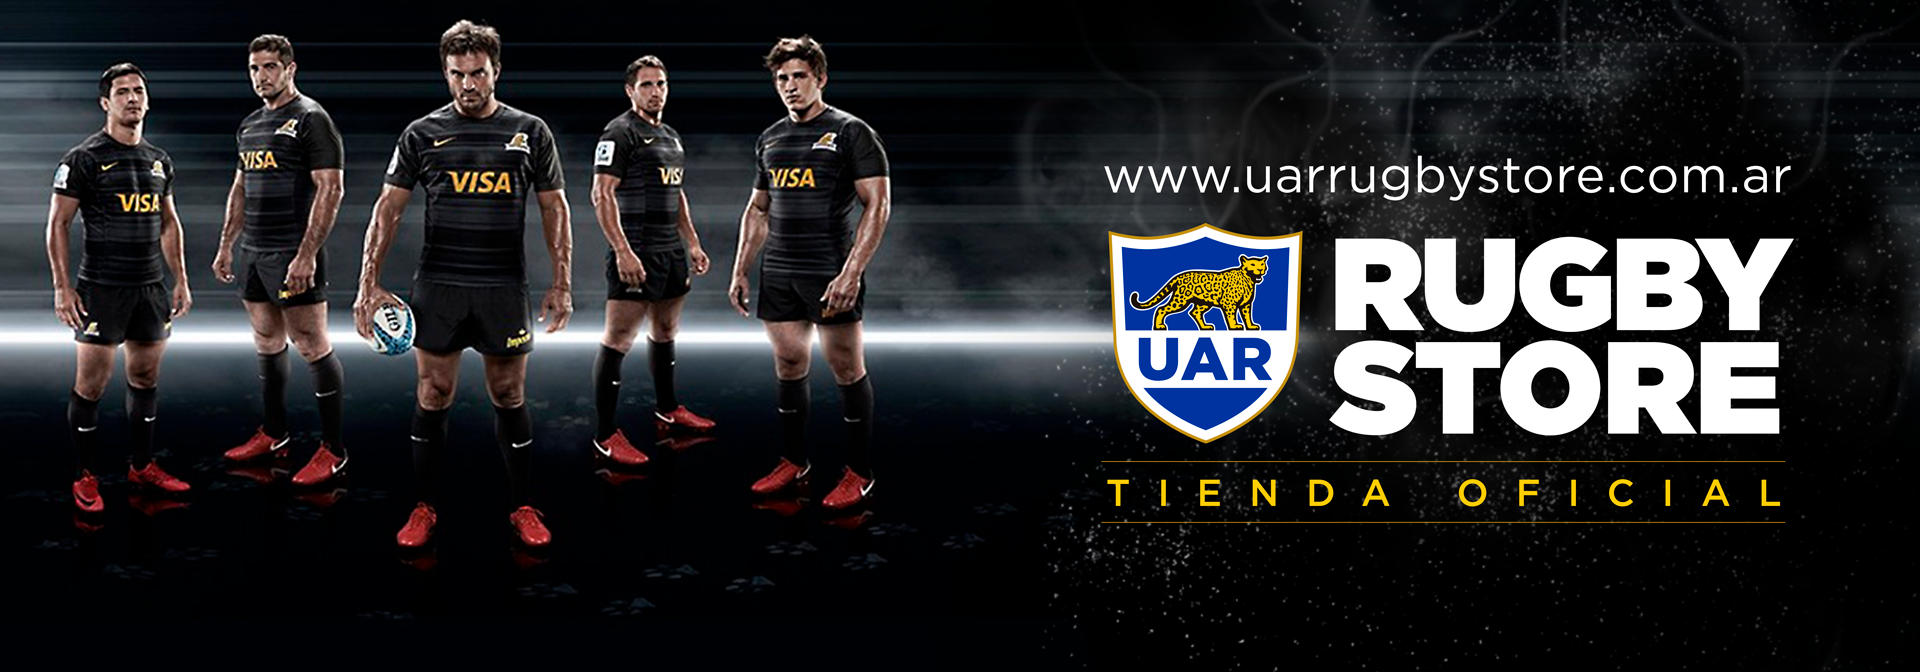 1920×672-banners-uar-rugby-store